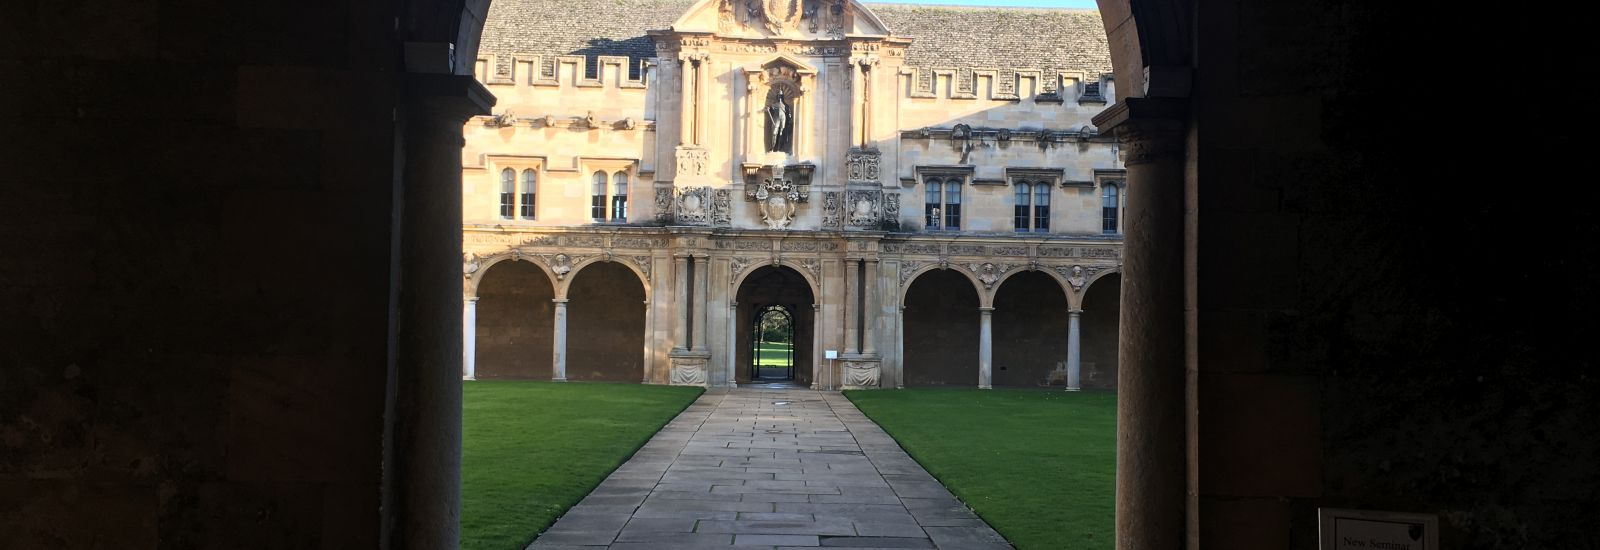 A view of Canterbury Quad at St John's College, Oxford through the archway